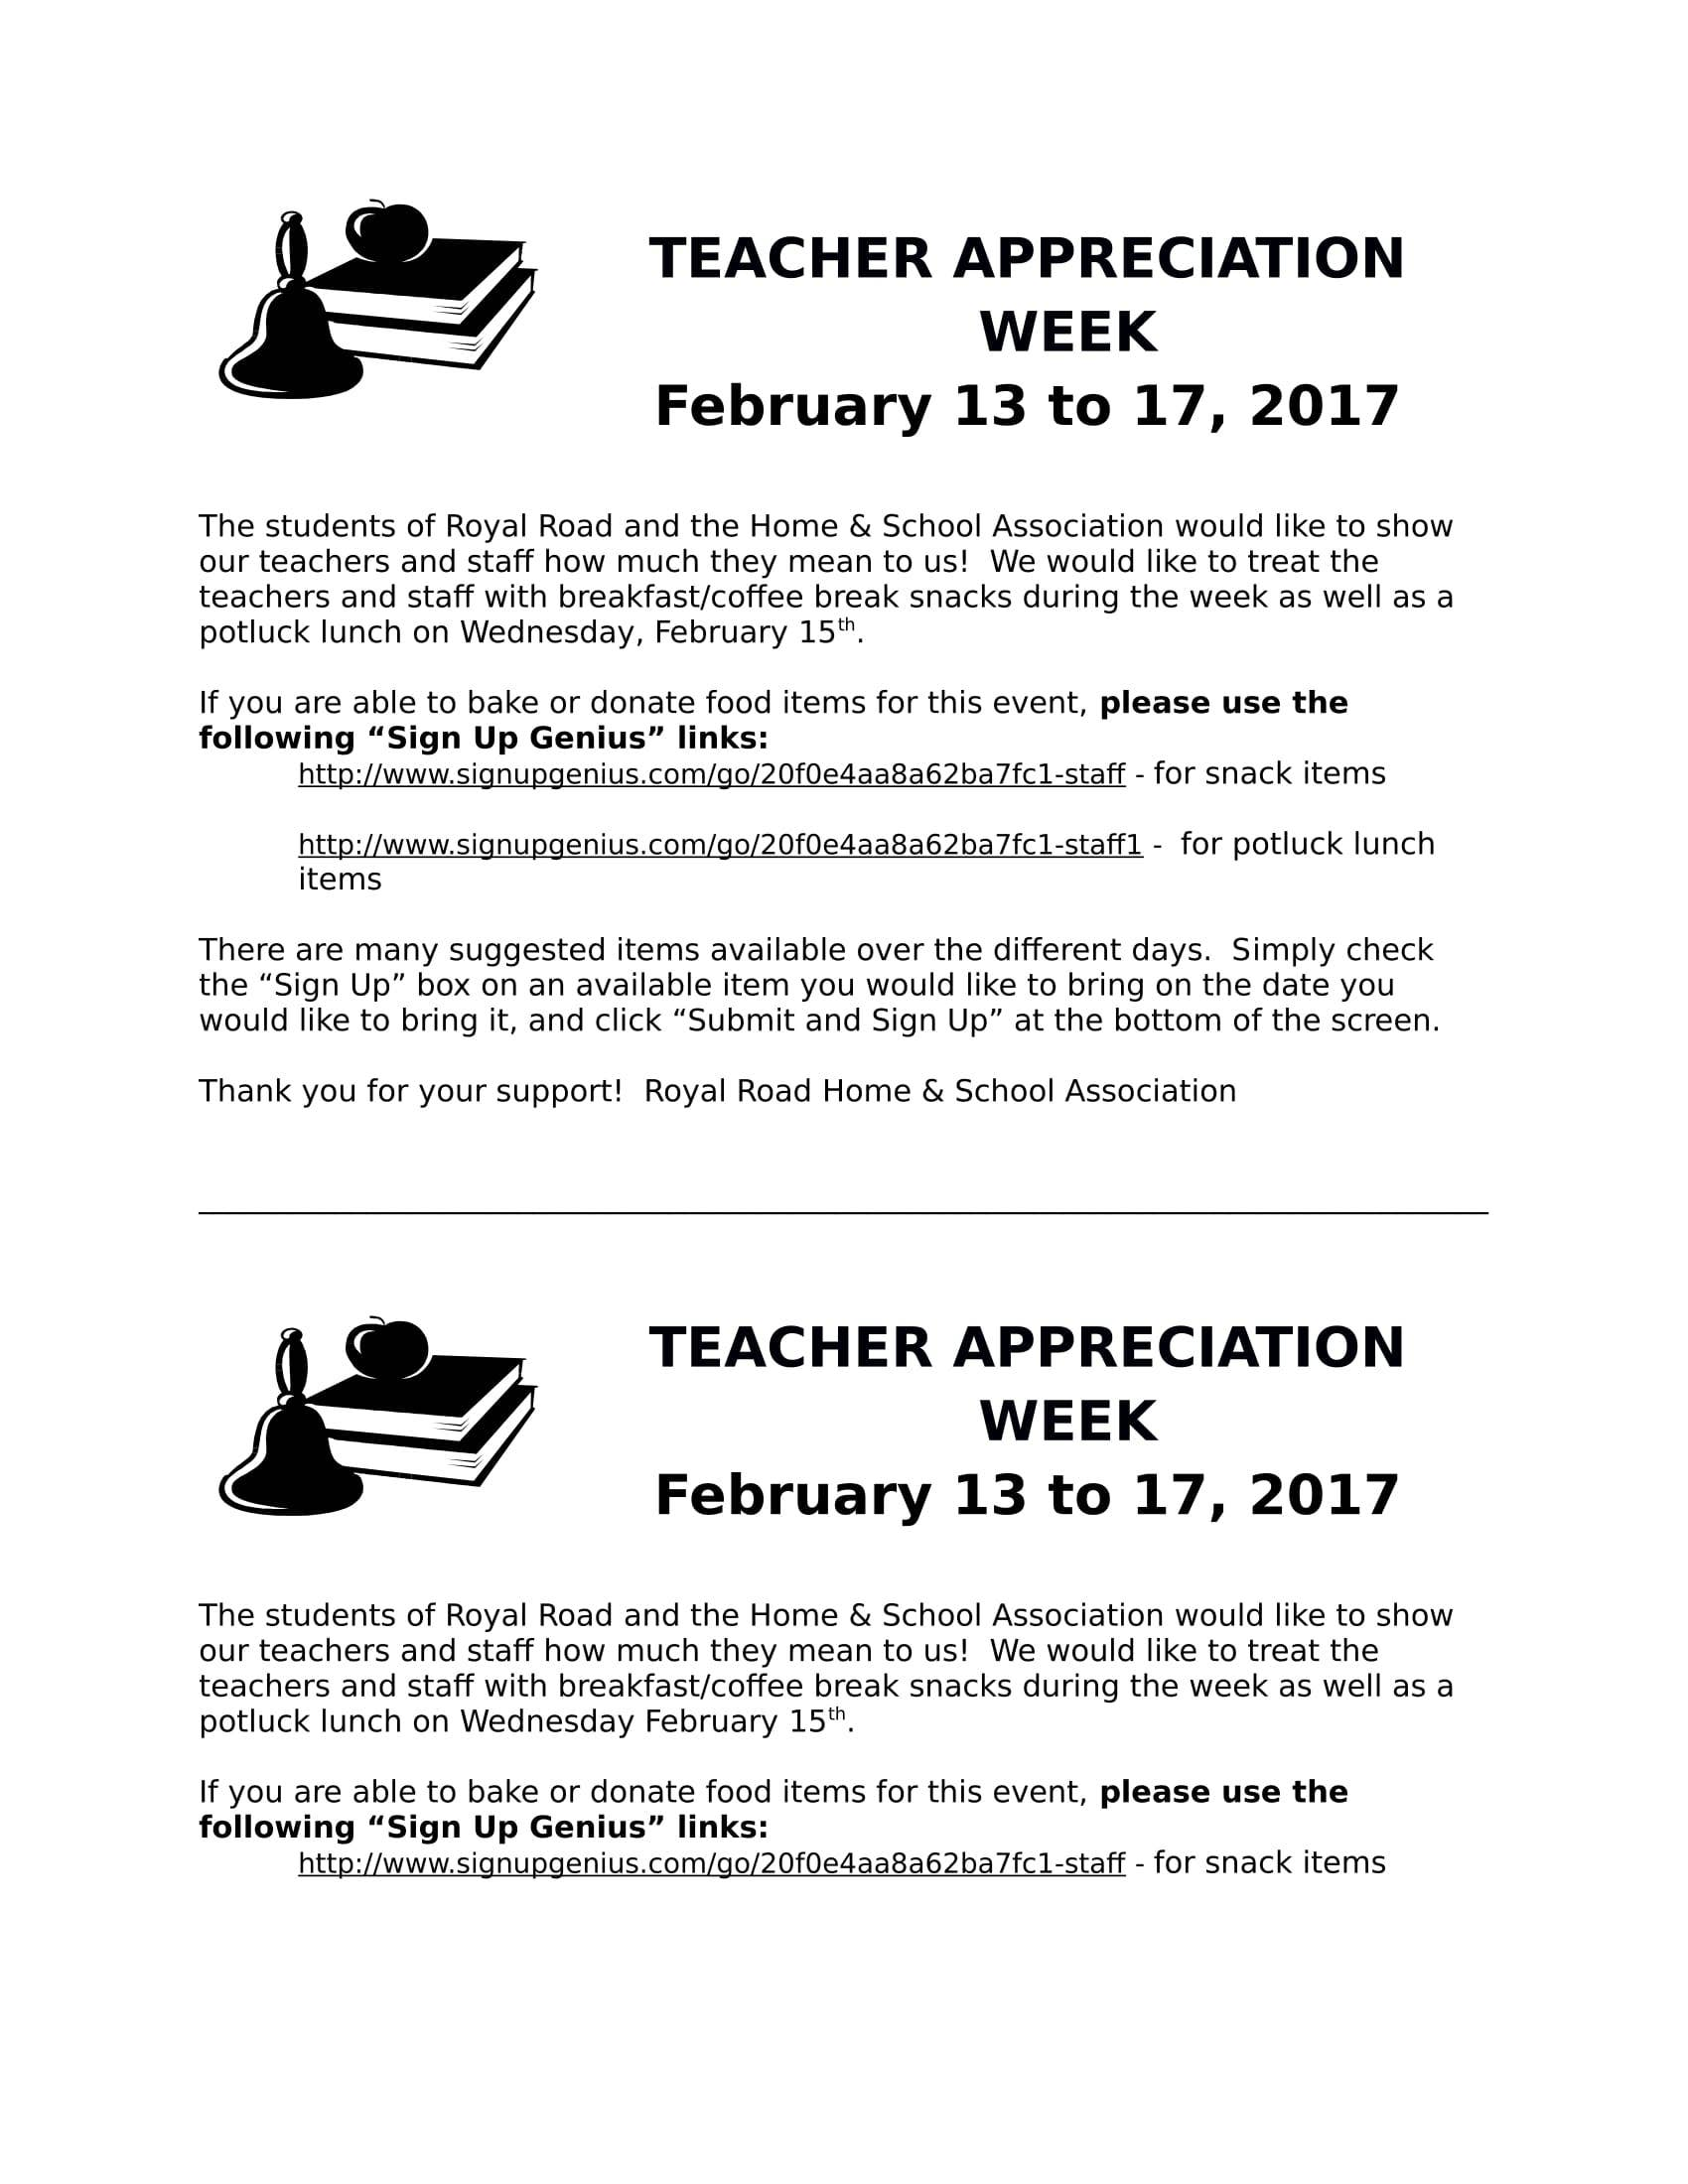 11  teacher appreciation letter templates